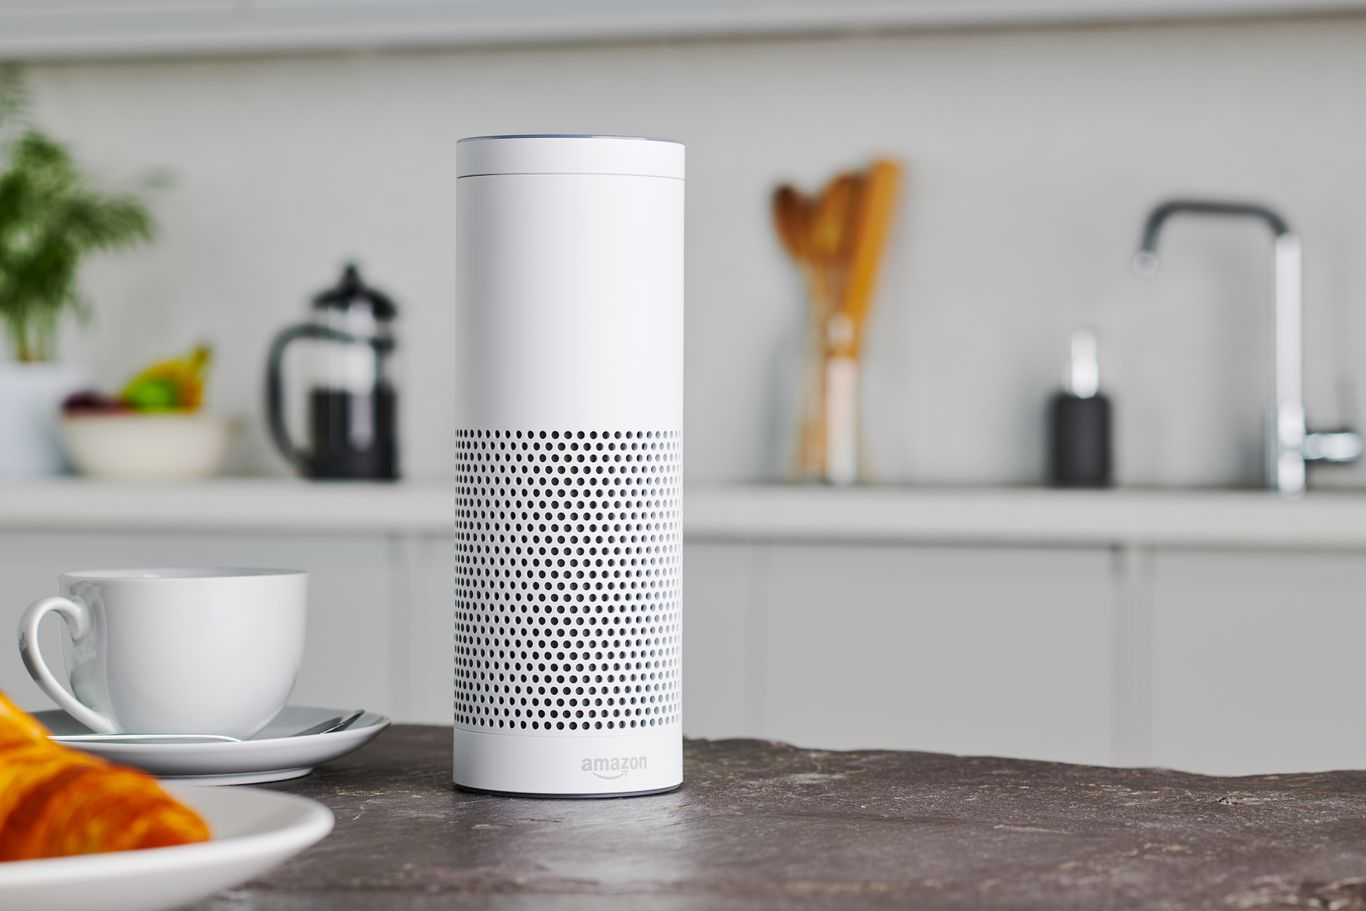 Exclusive: Coronavirus lockdowns giving smart speakers a workout